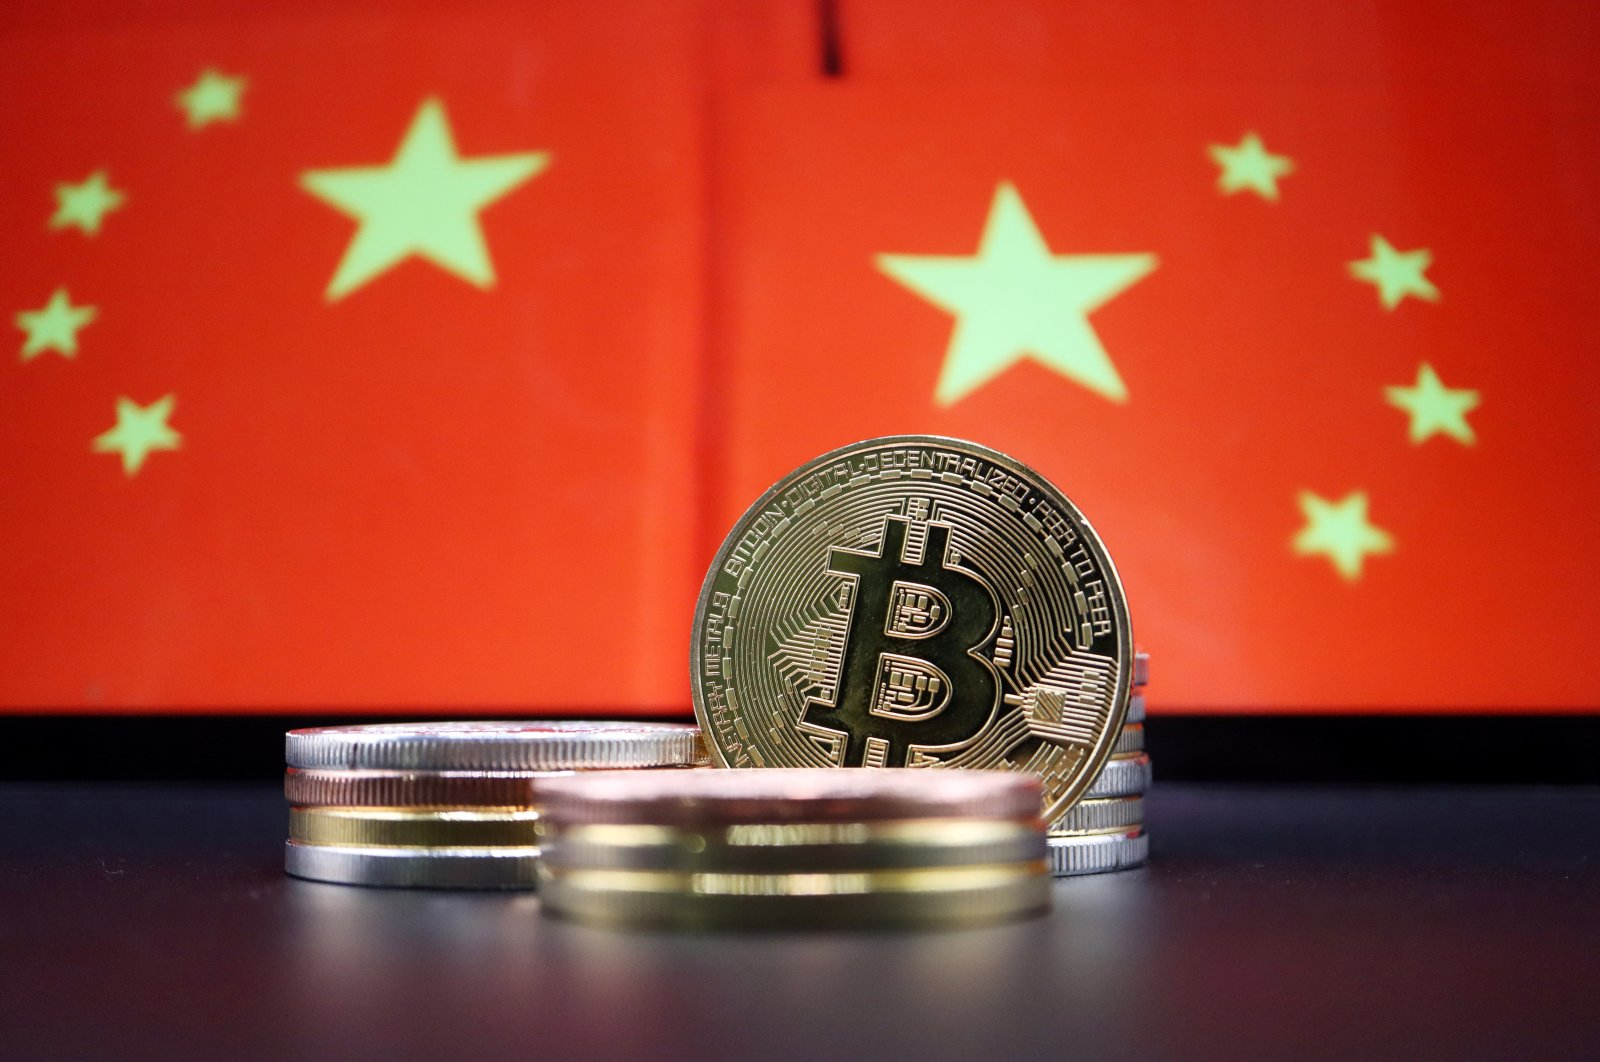 Representations of Bitcoin are seen in front of an image of Chinese flags in this illustration picture taken June 2, 2021. (Reuters Photo)